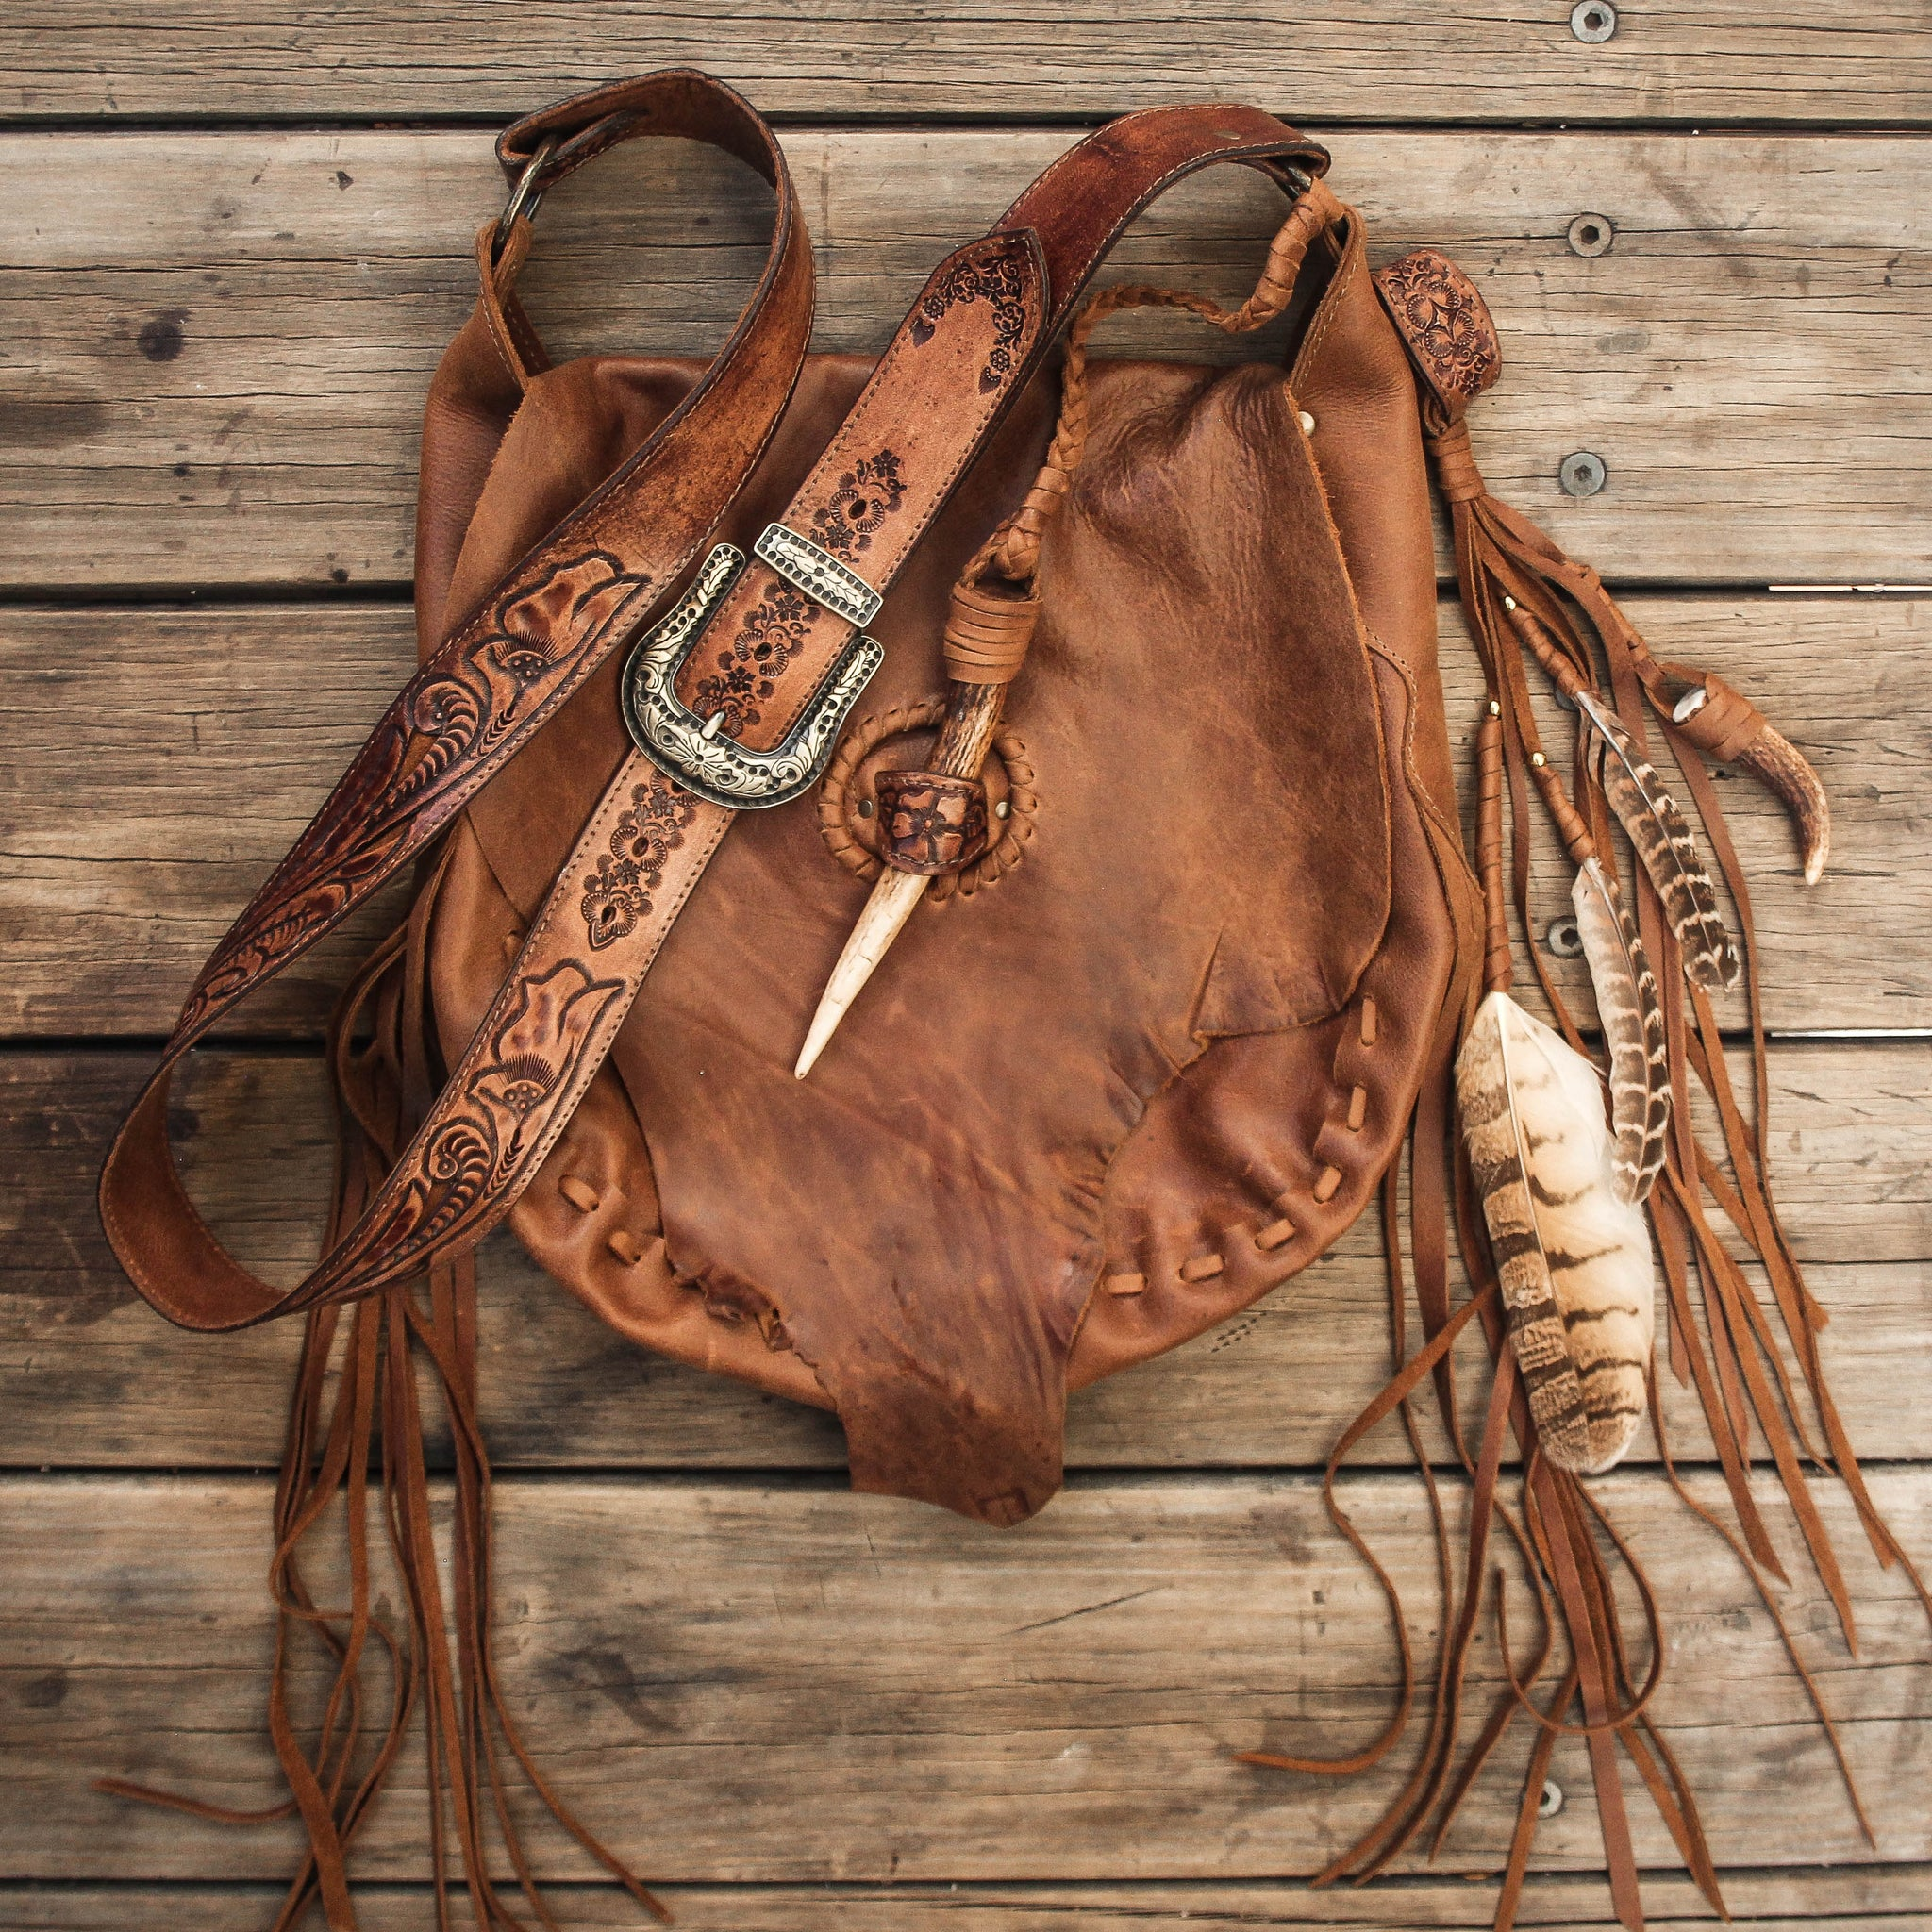 Raw Hyde Nomad Bag with Stag Horn Fastening in distressed tan leather.